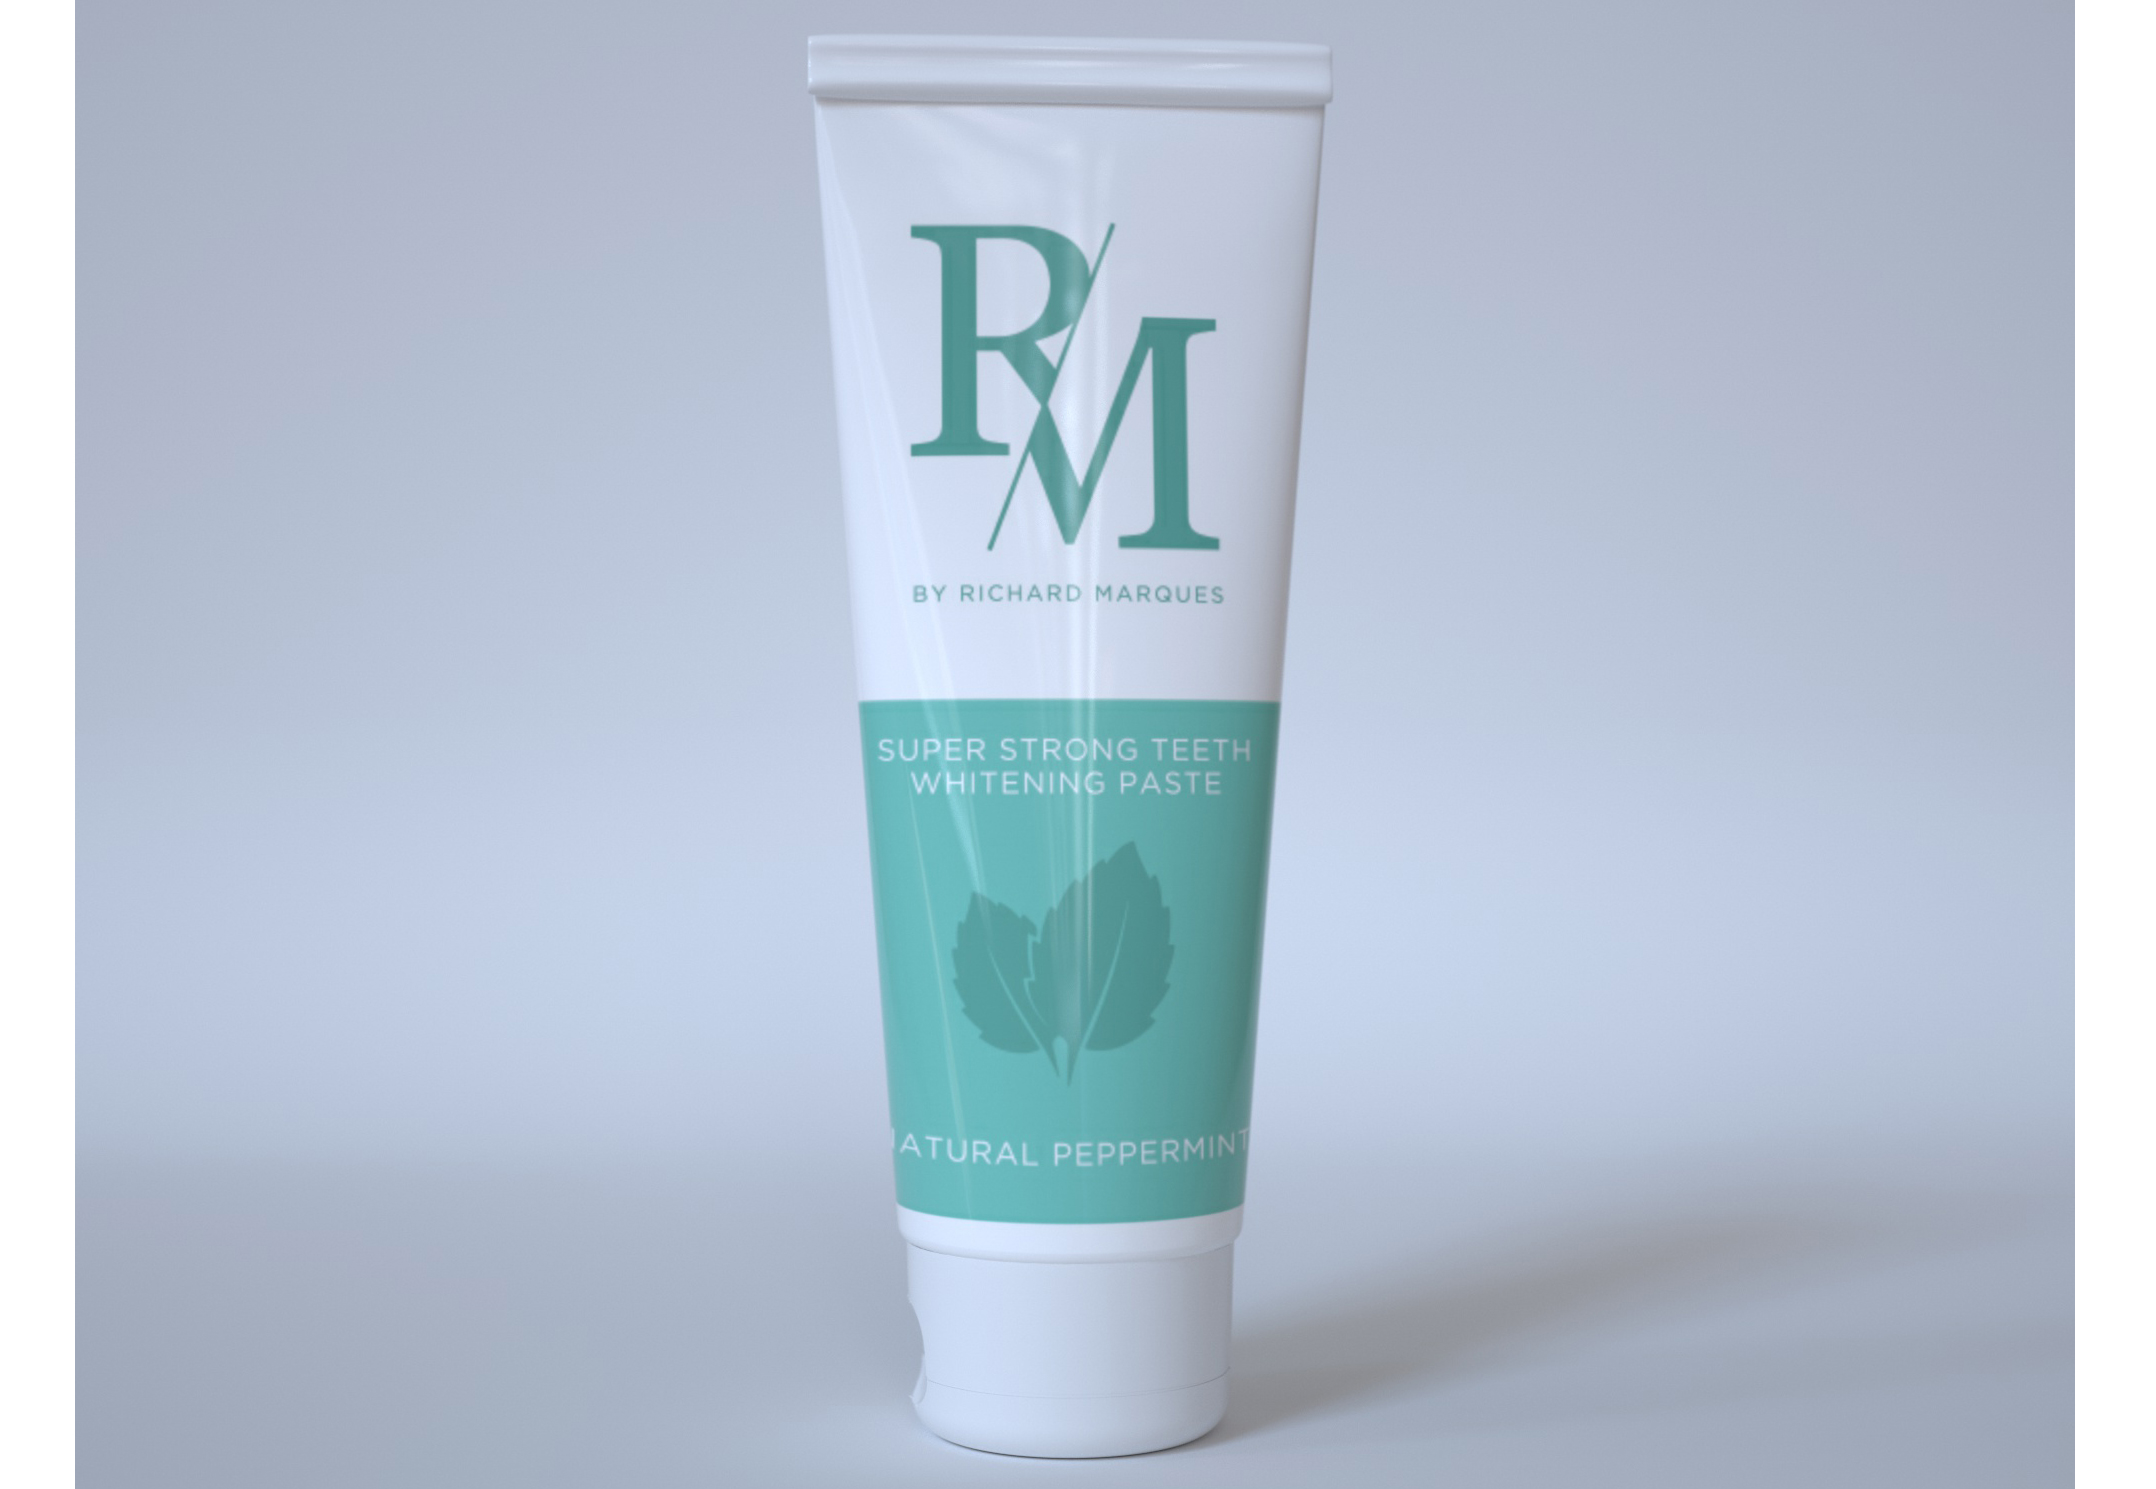 By-Richard-Marques-Super-Strong-Teeth-Whitening-Paste,-£15-www.richardjmarques.com.jpg